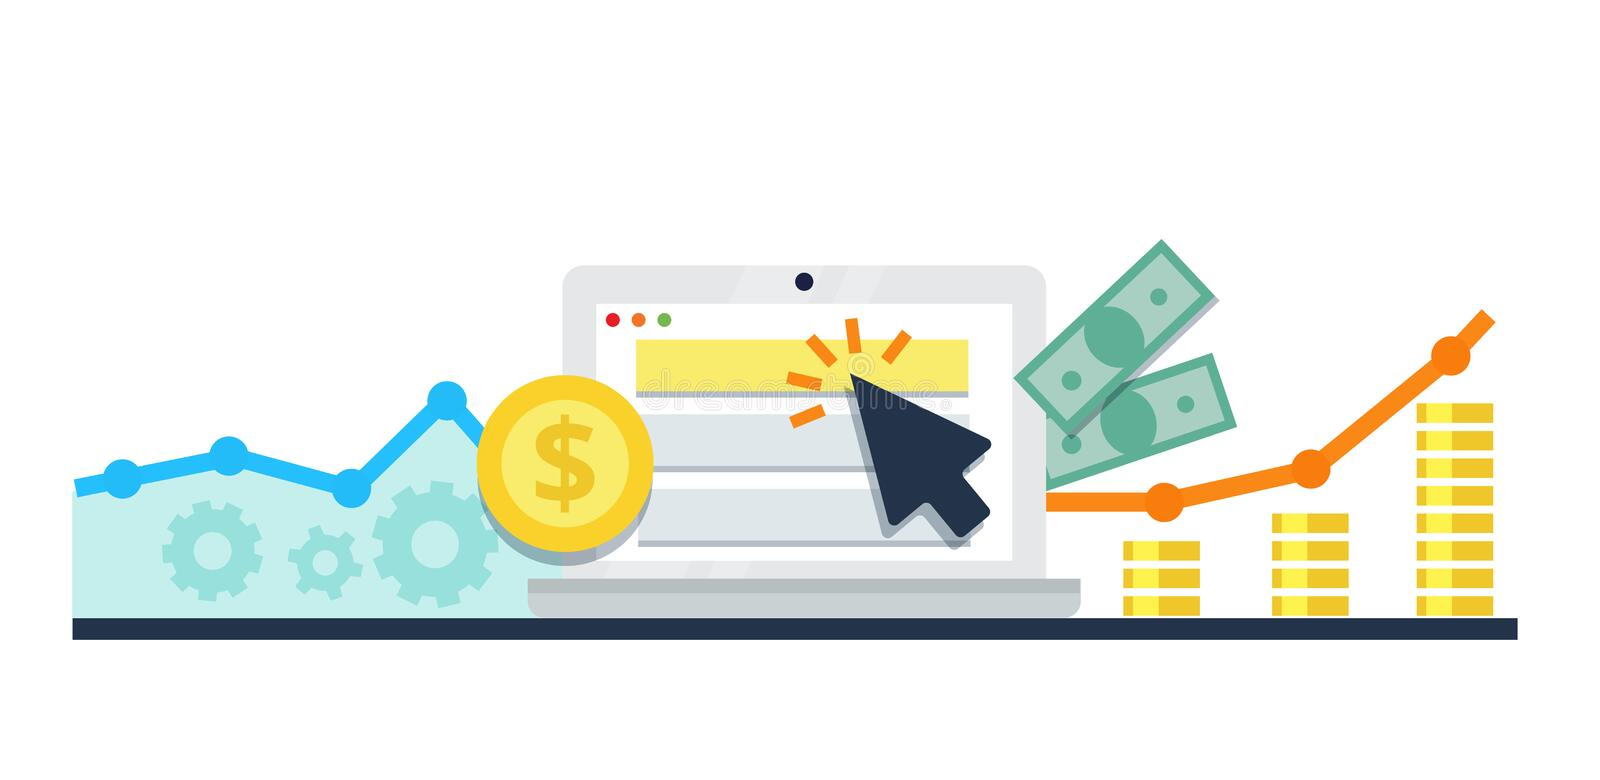 Pay Per Click internet marketing concept - flat illustration. PPC advertising and conversion. PPC, pay per click flat online internet marketing concept stock illustration